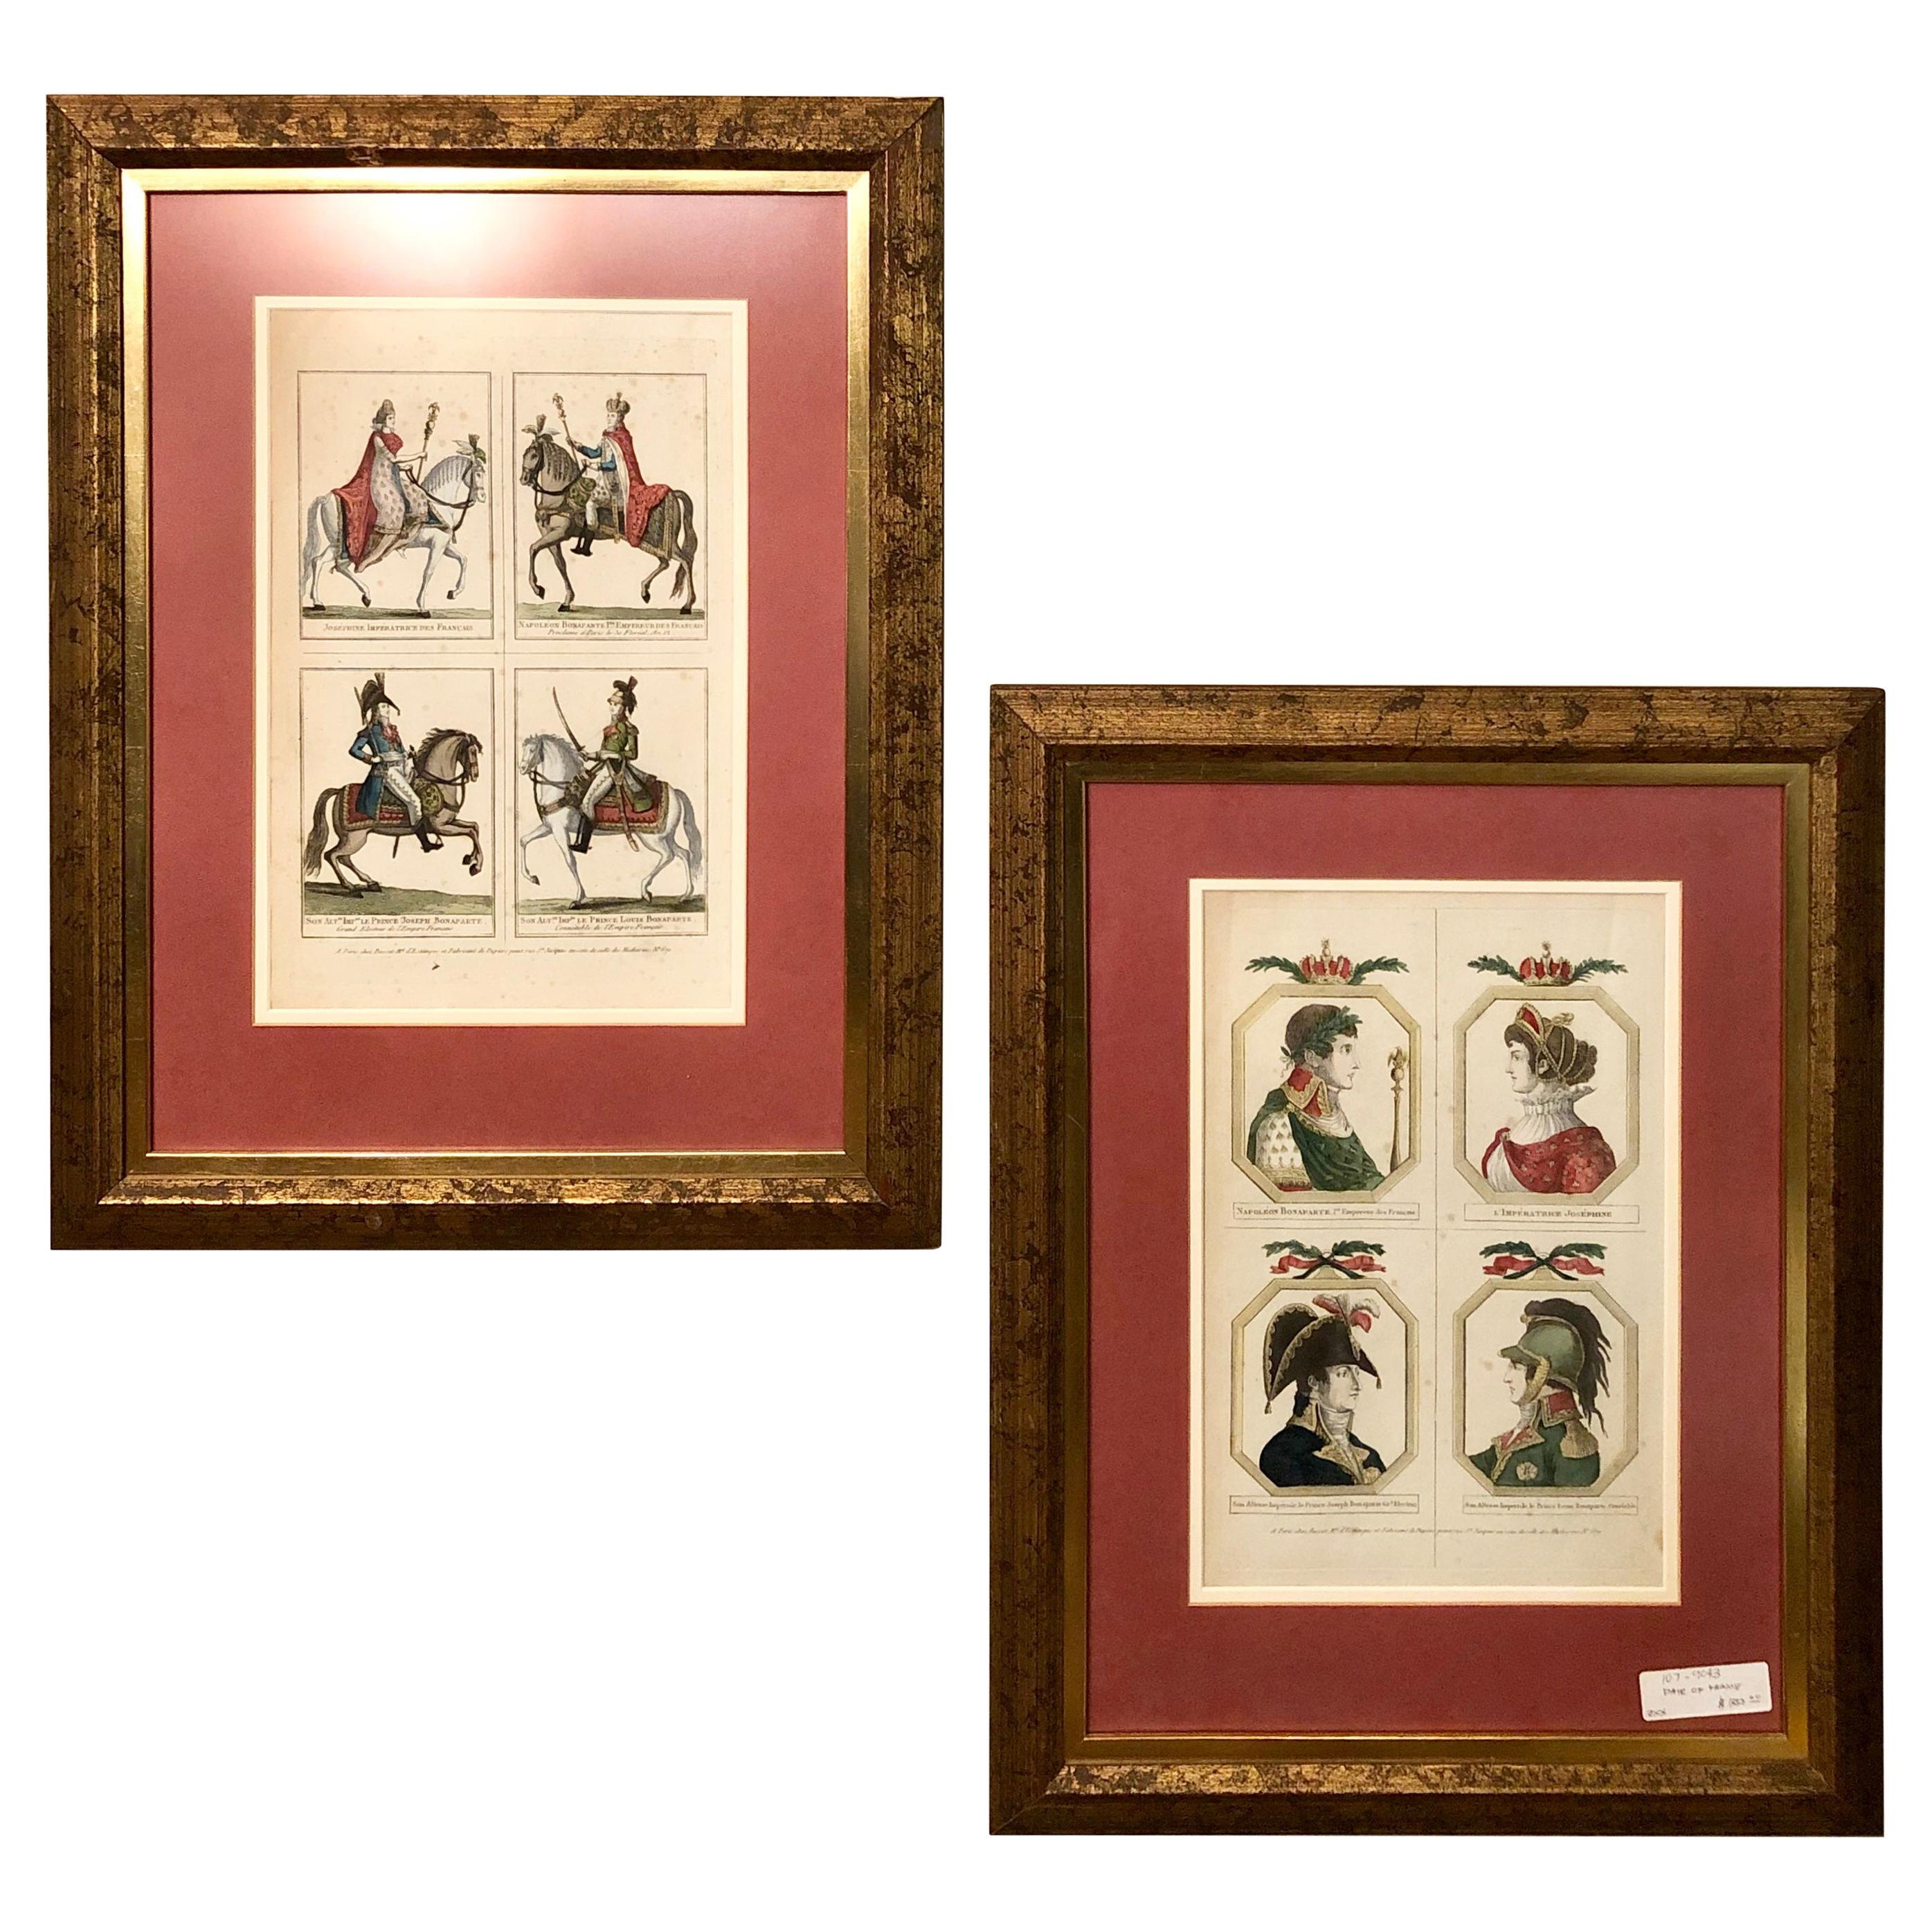 Pair of Napoleonice Engravings in a Tortoise Shell Frame